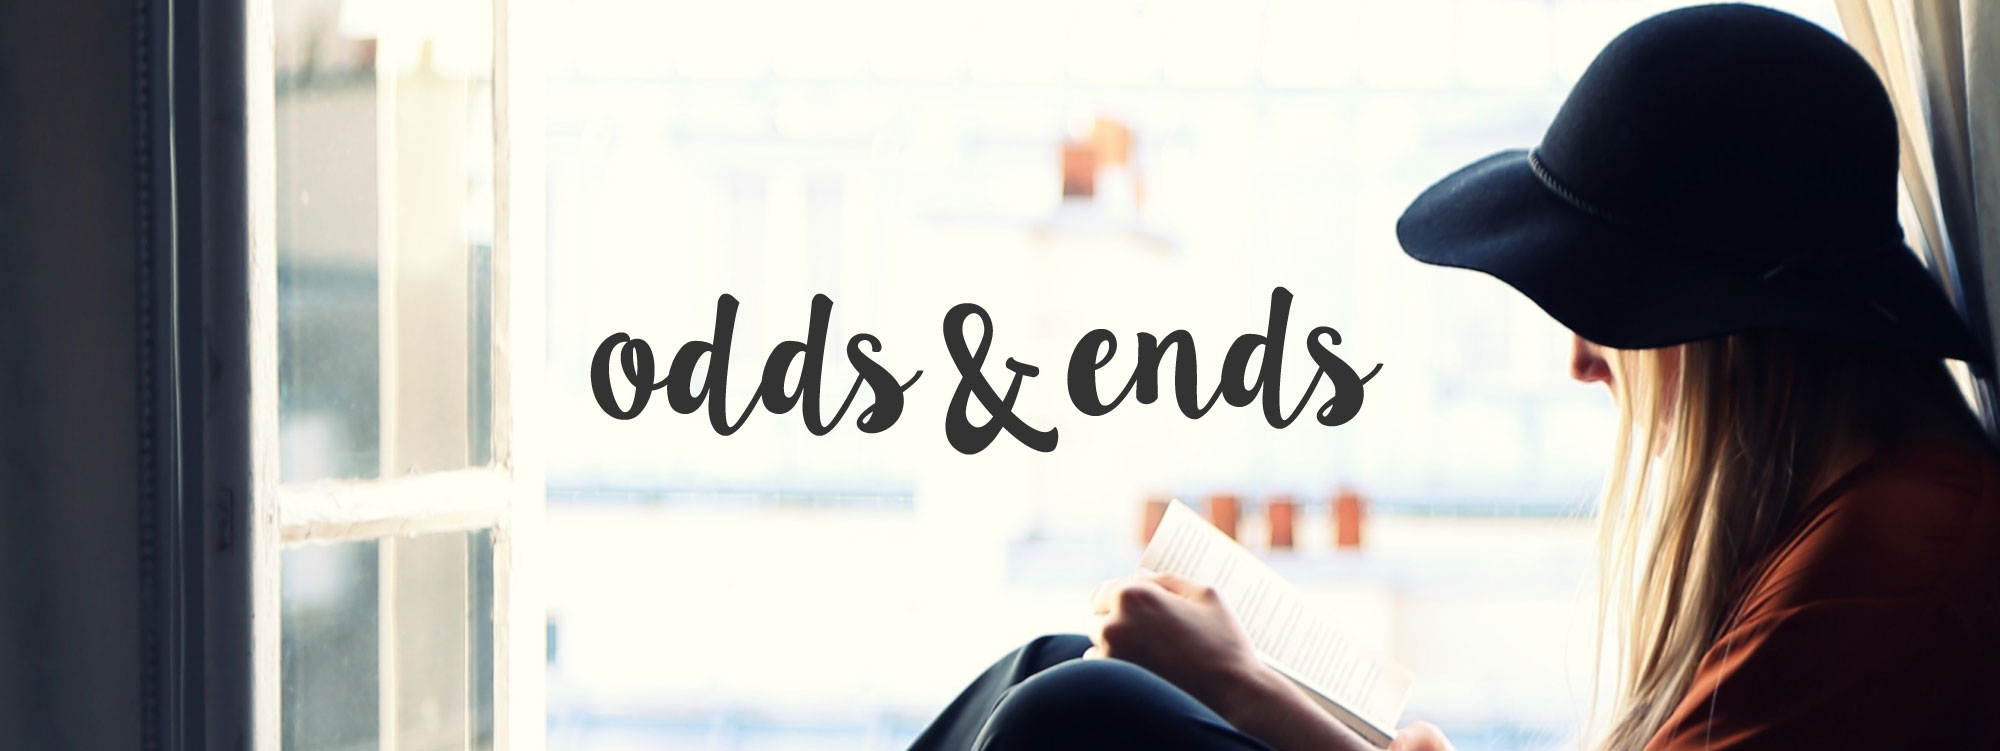 Odds & Ends - Terese Wahlberg